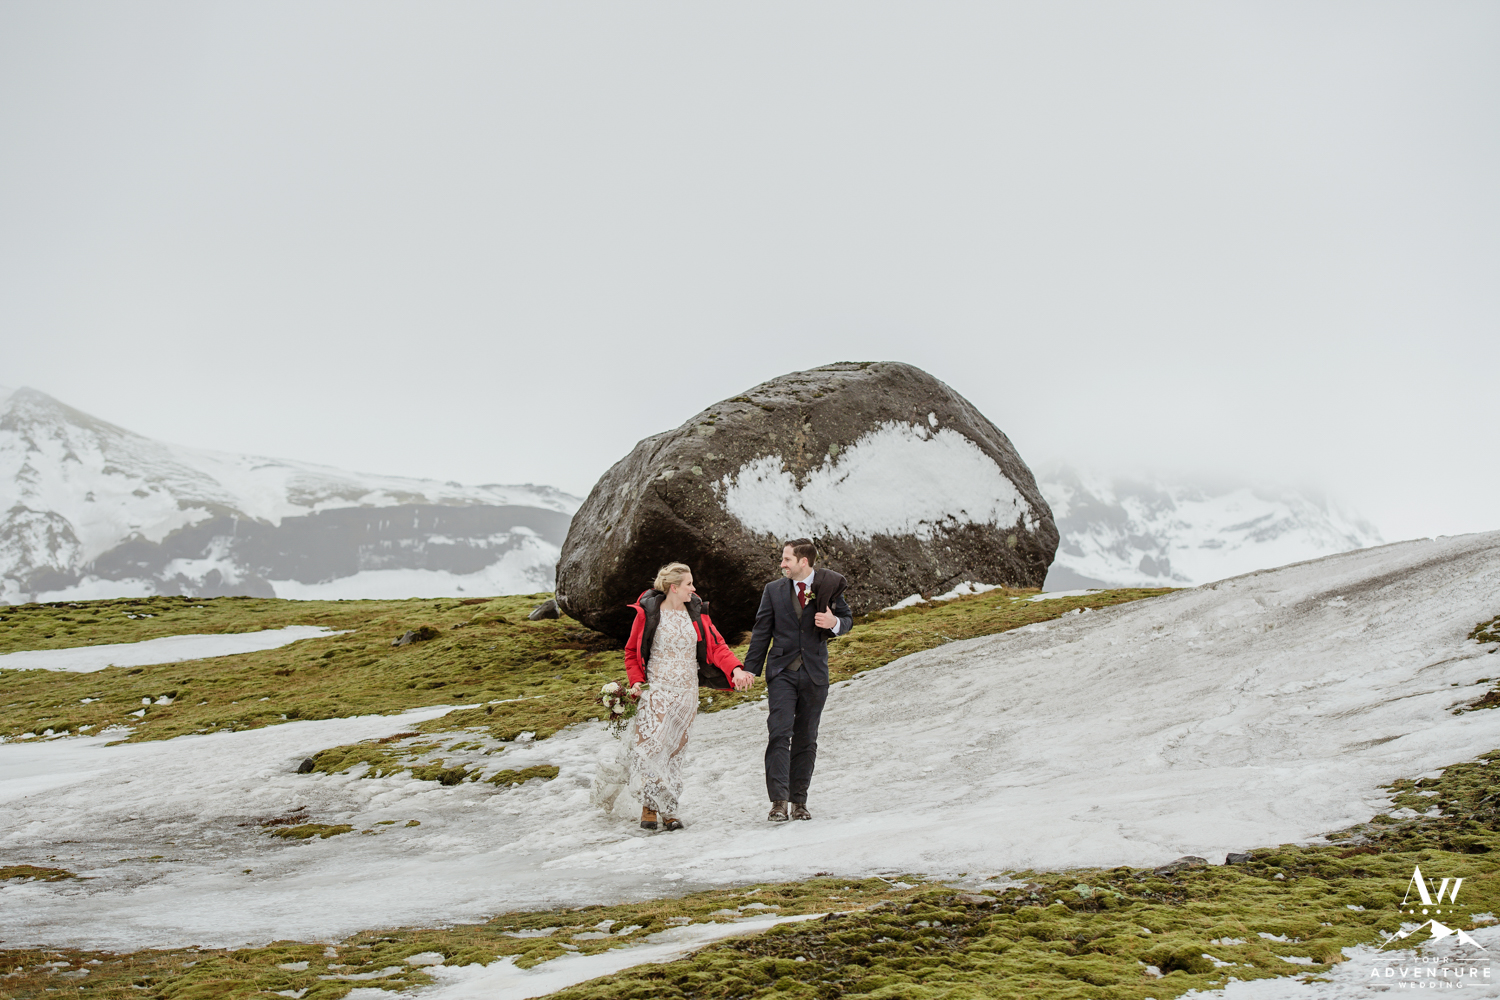 Couple walking on snow in Iceland